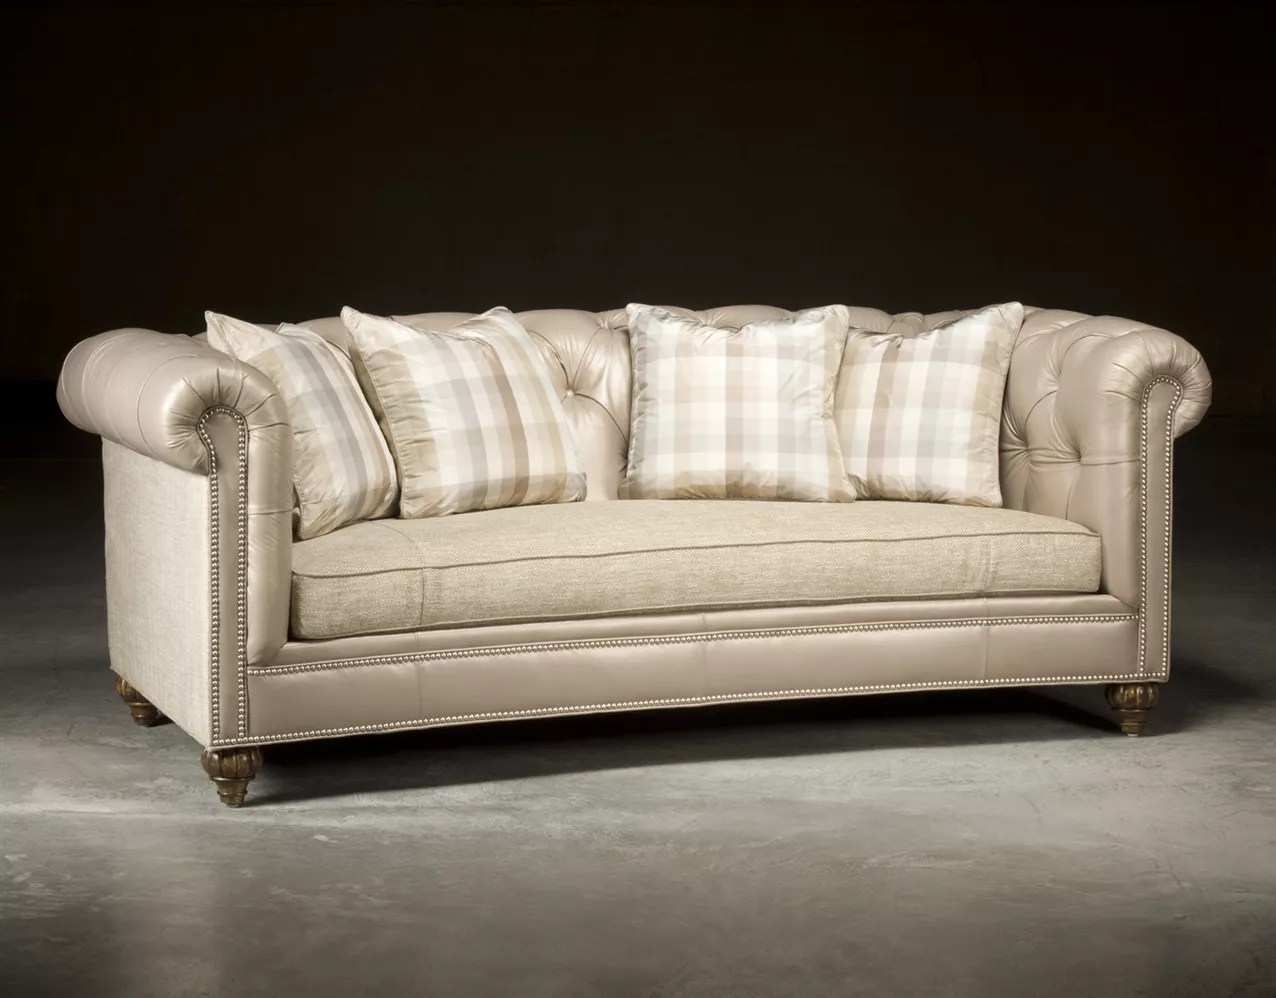 Sofa Couch Or Chesterfield Chesterfield Tufted Sofa High End Upholstered Furniture